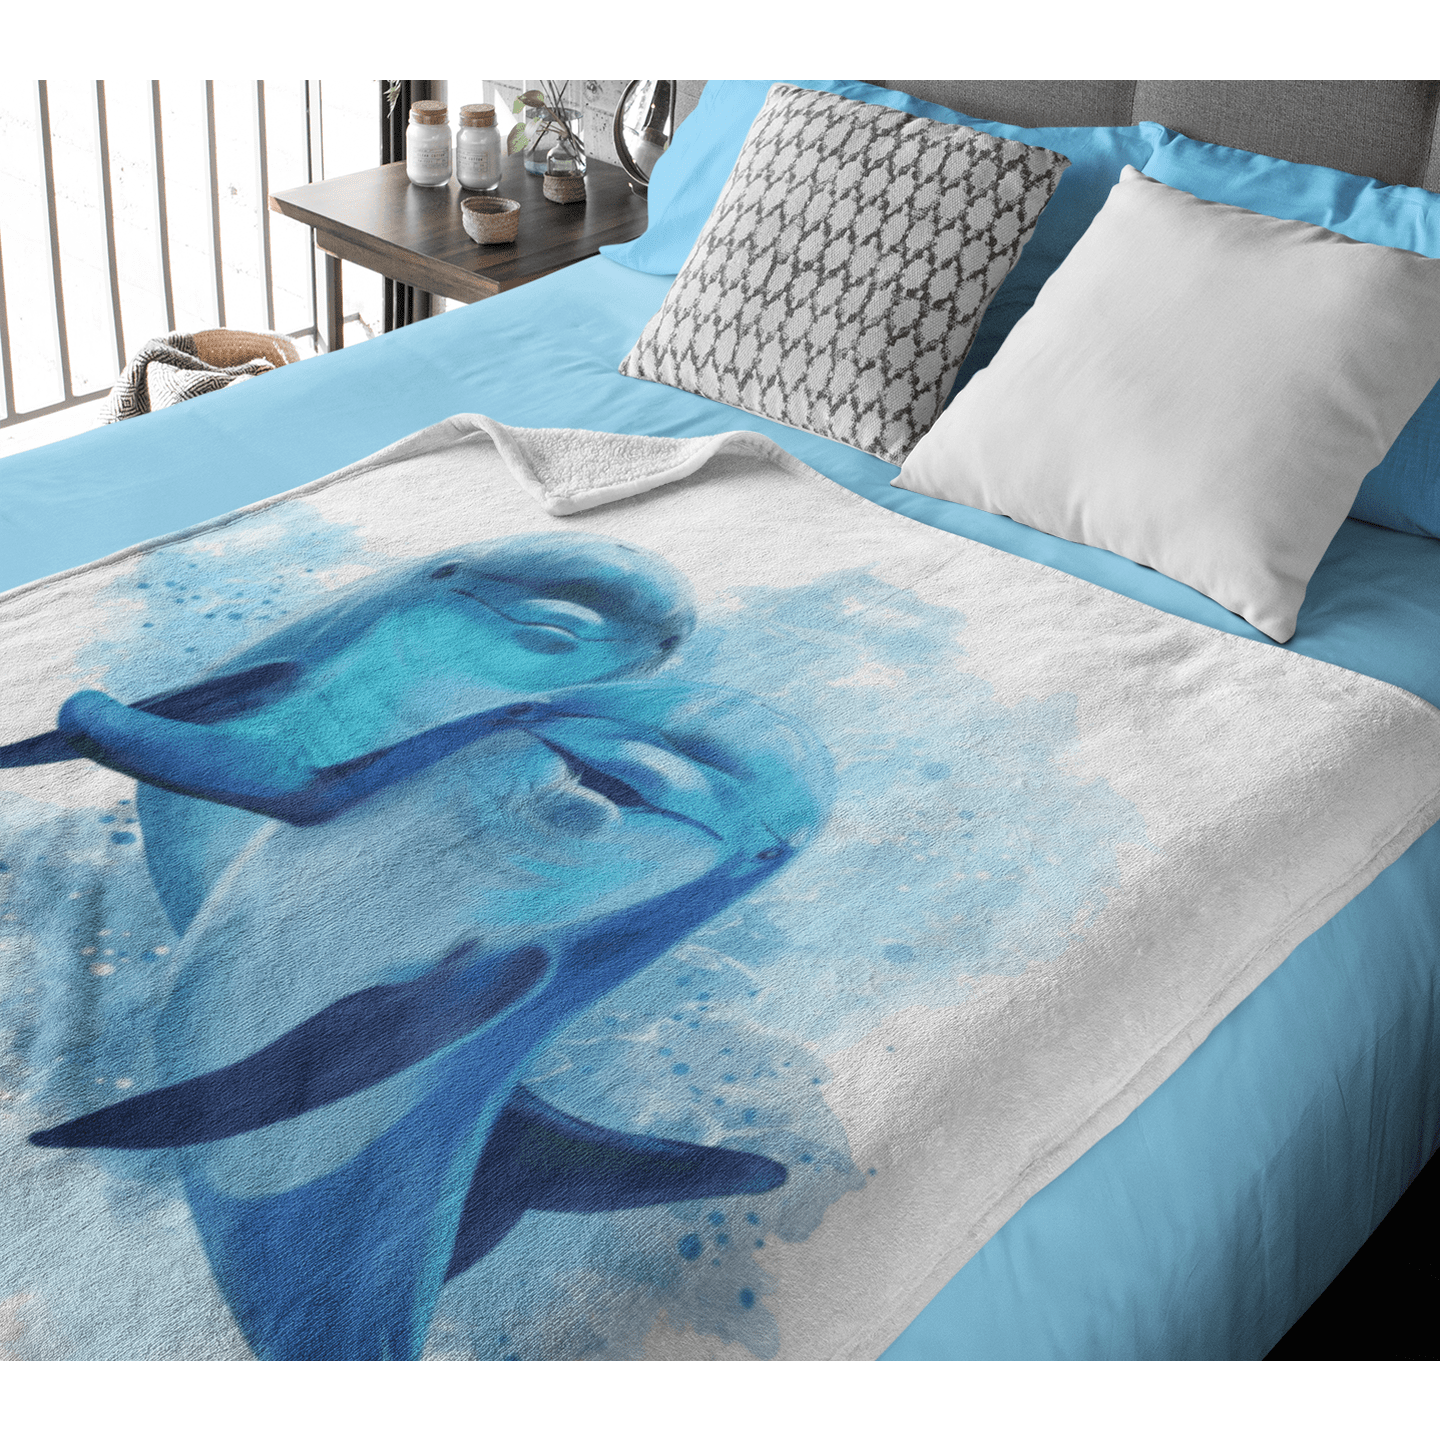 Dolphins Of The Sea Squiffy Minky Blanket-Dolphins Of The Sea-Little Squiffy